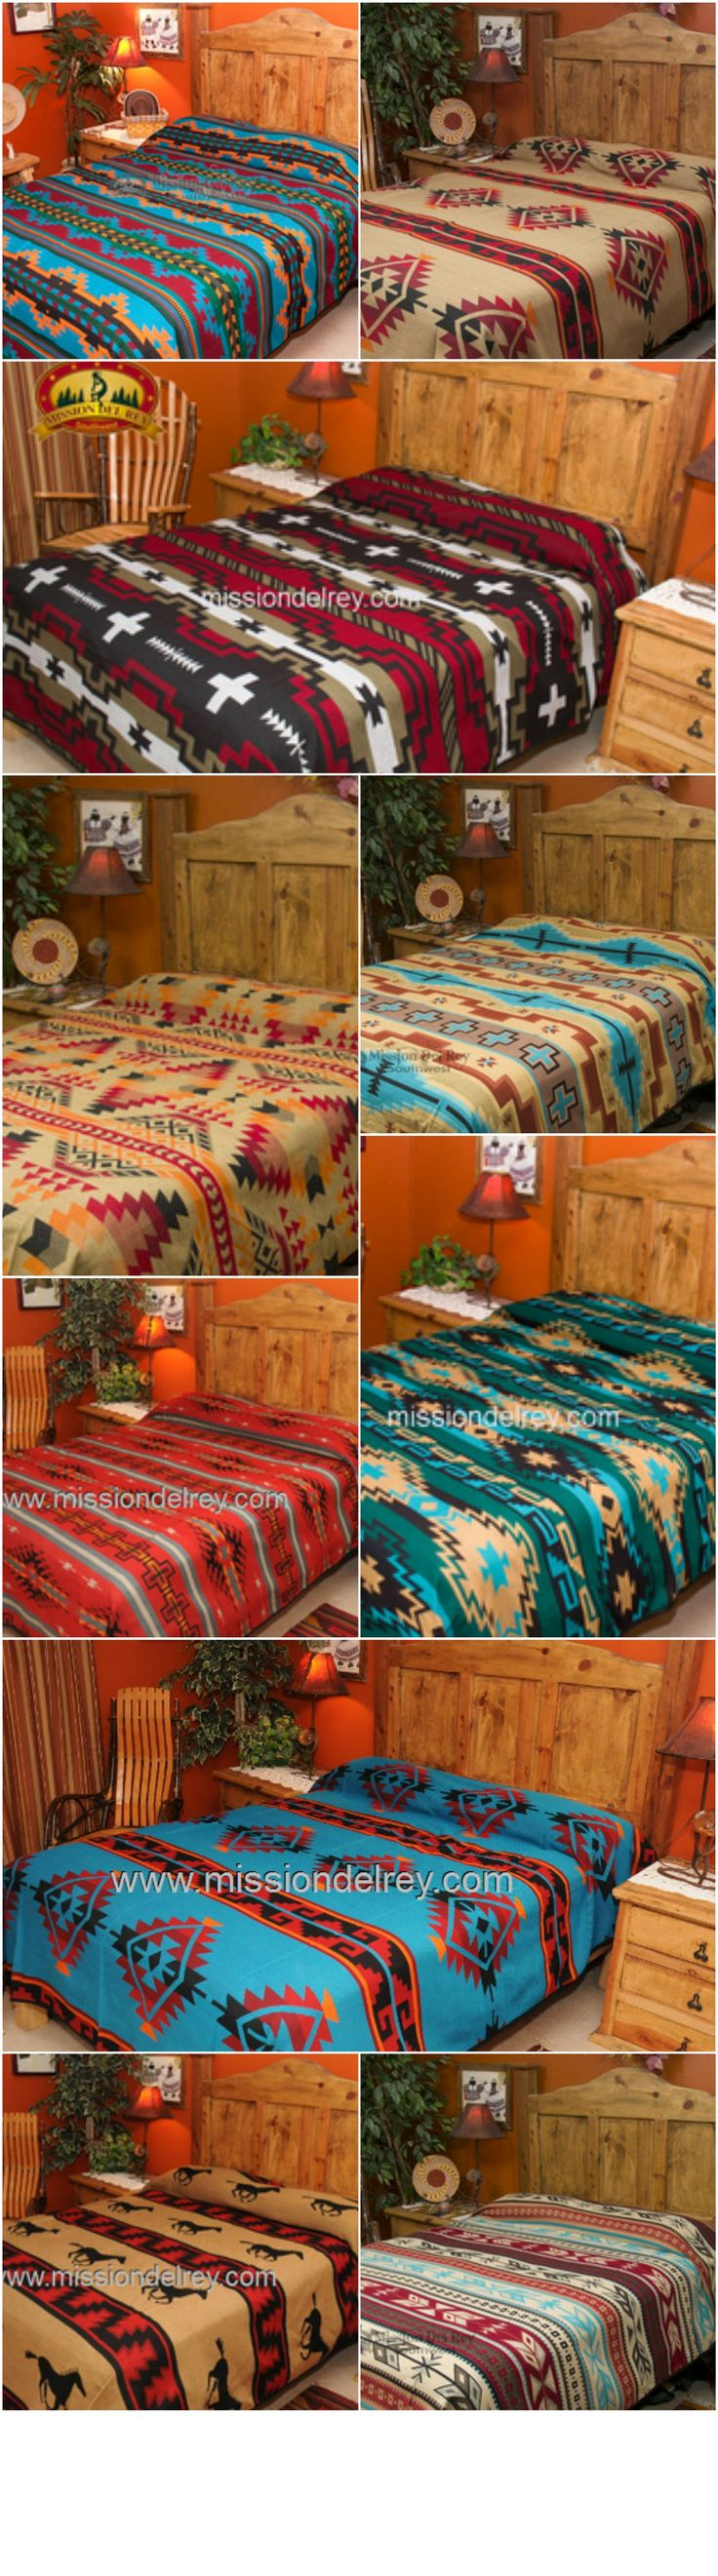 25 best ideas about southwest decor on pinterest bedspread desert homes and southwestern decorating - Southwestern Decor